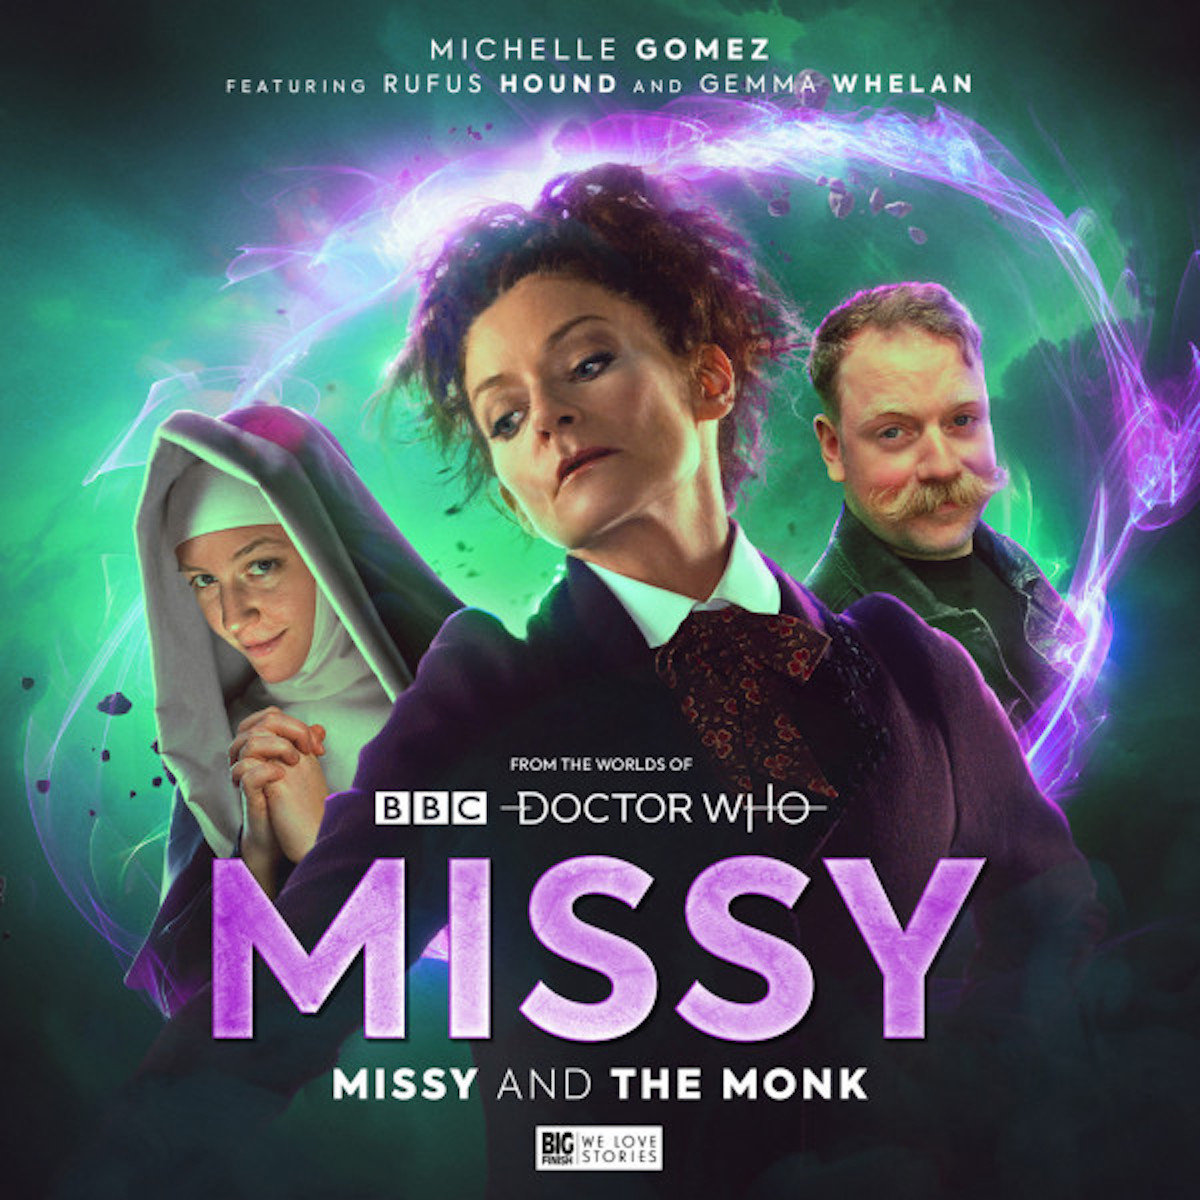 Missy and The Monk